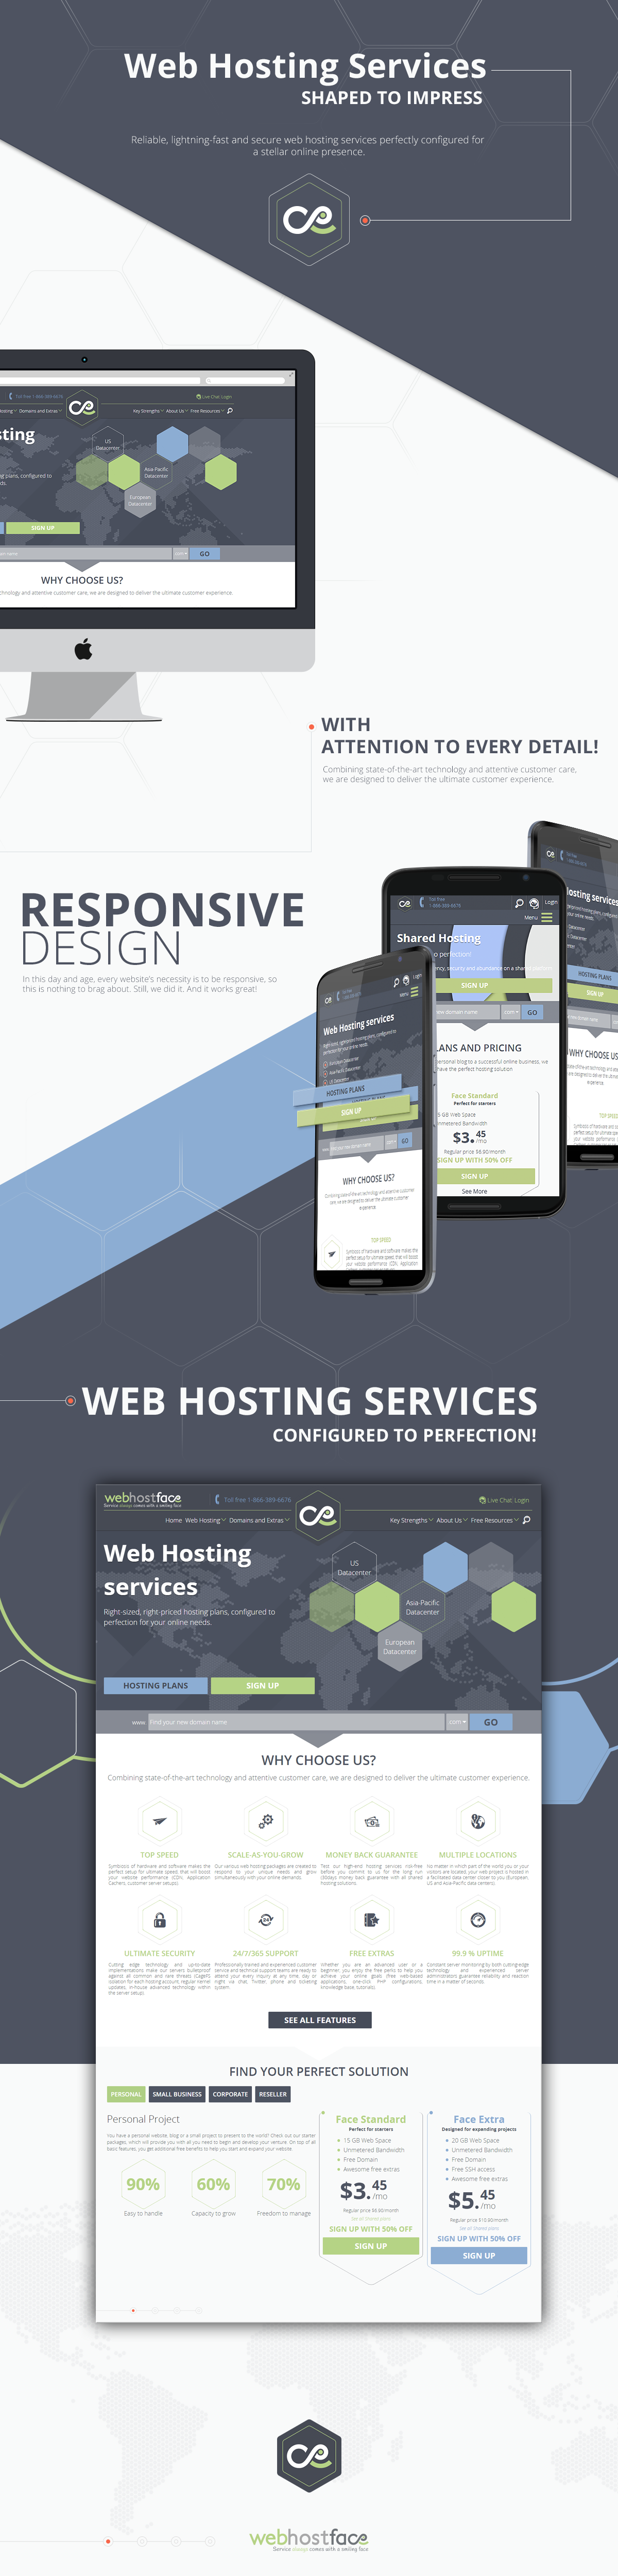 WebHostFace  new website